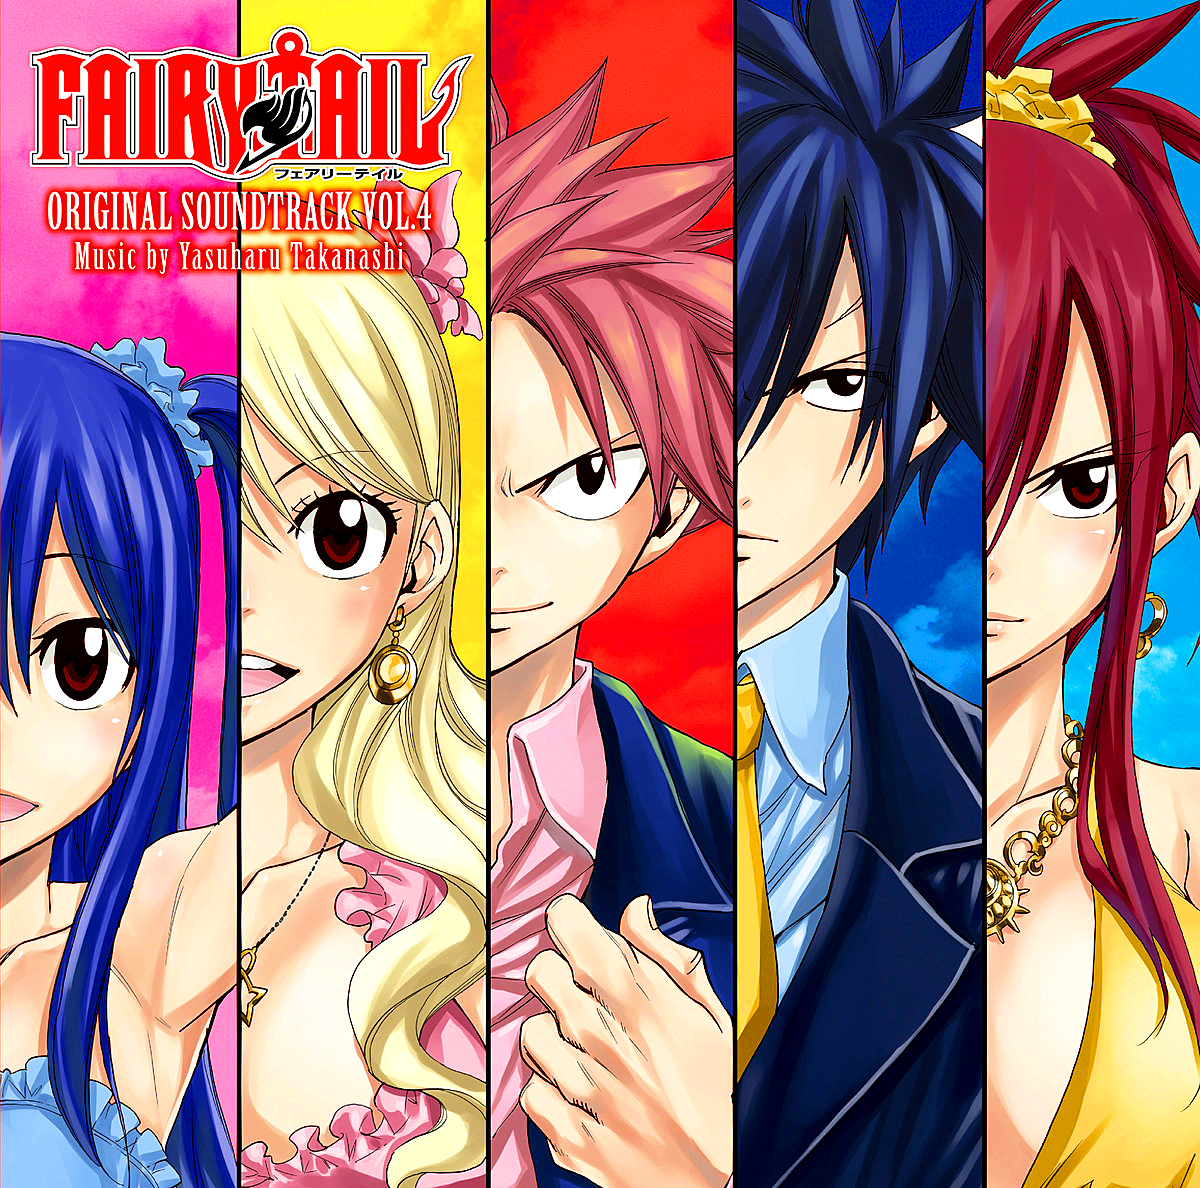 Download Manga Hiren Trip: Fairy Tail OST Volume 4 Download Link By NaLu-GrUviaFC On